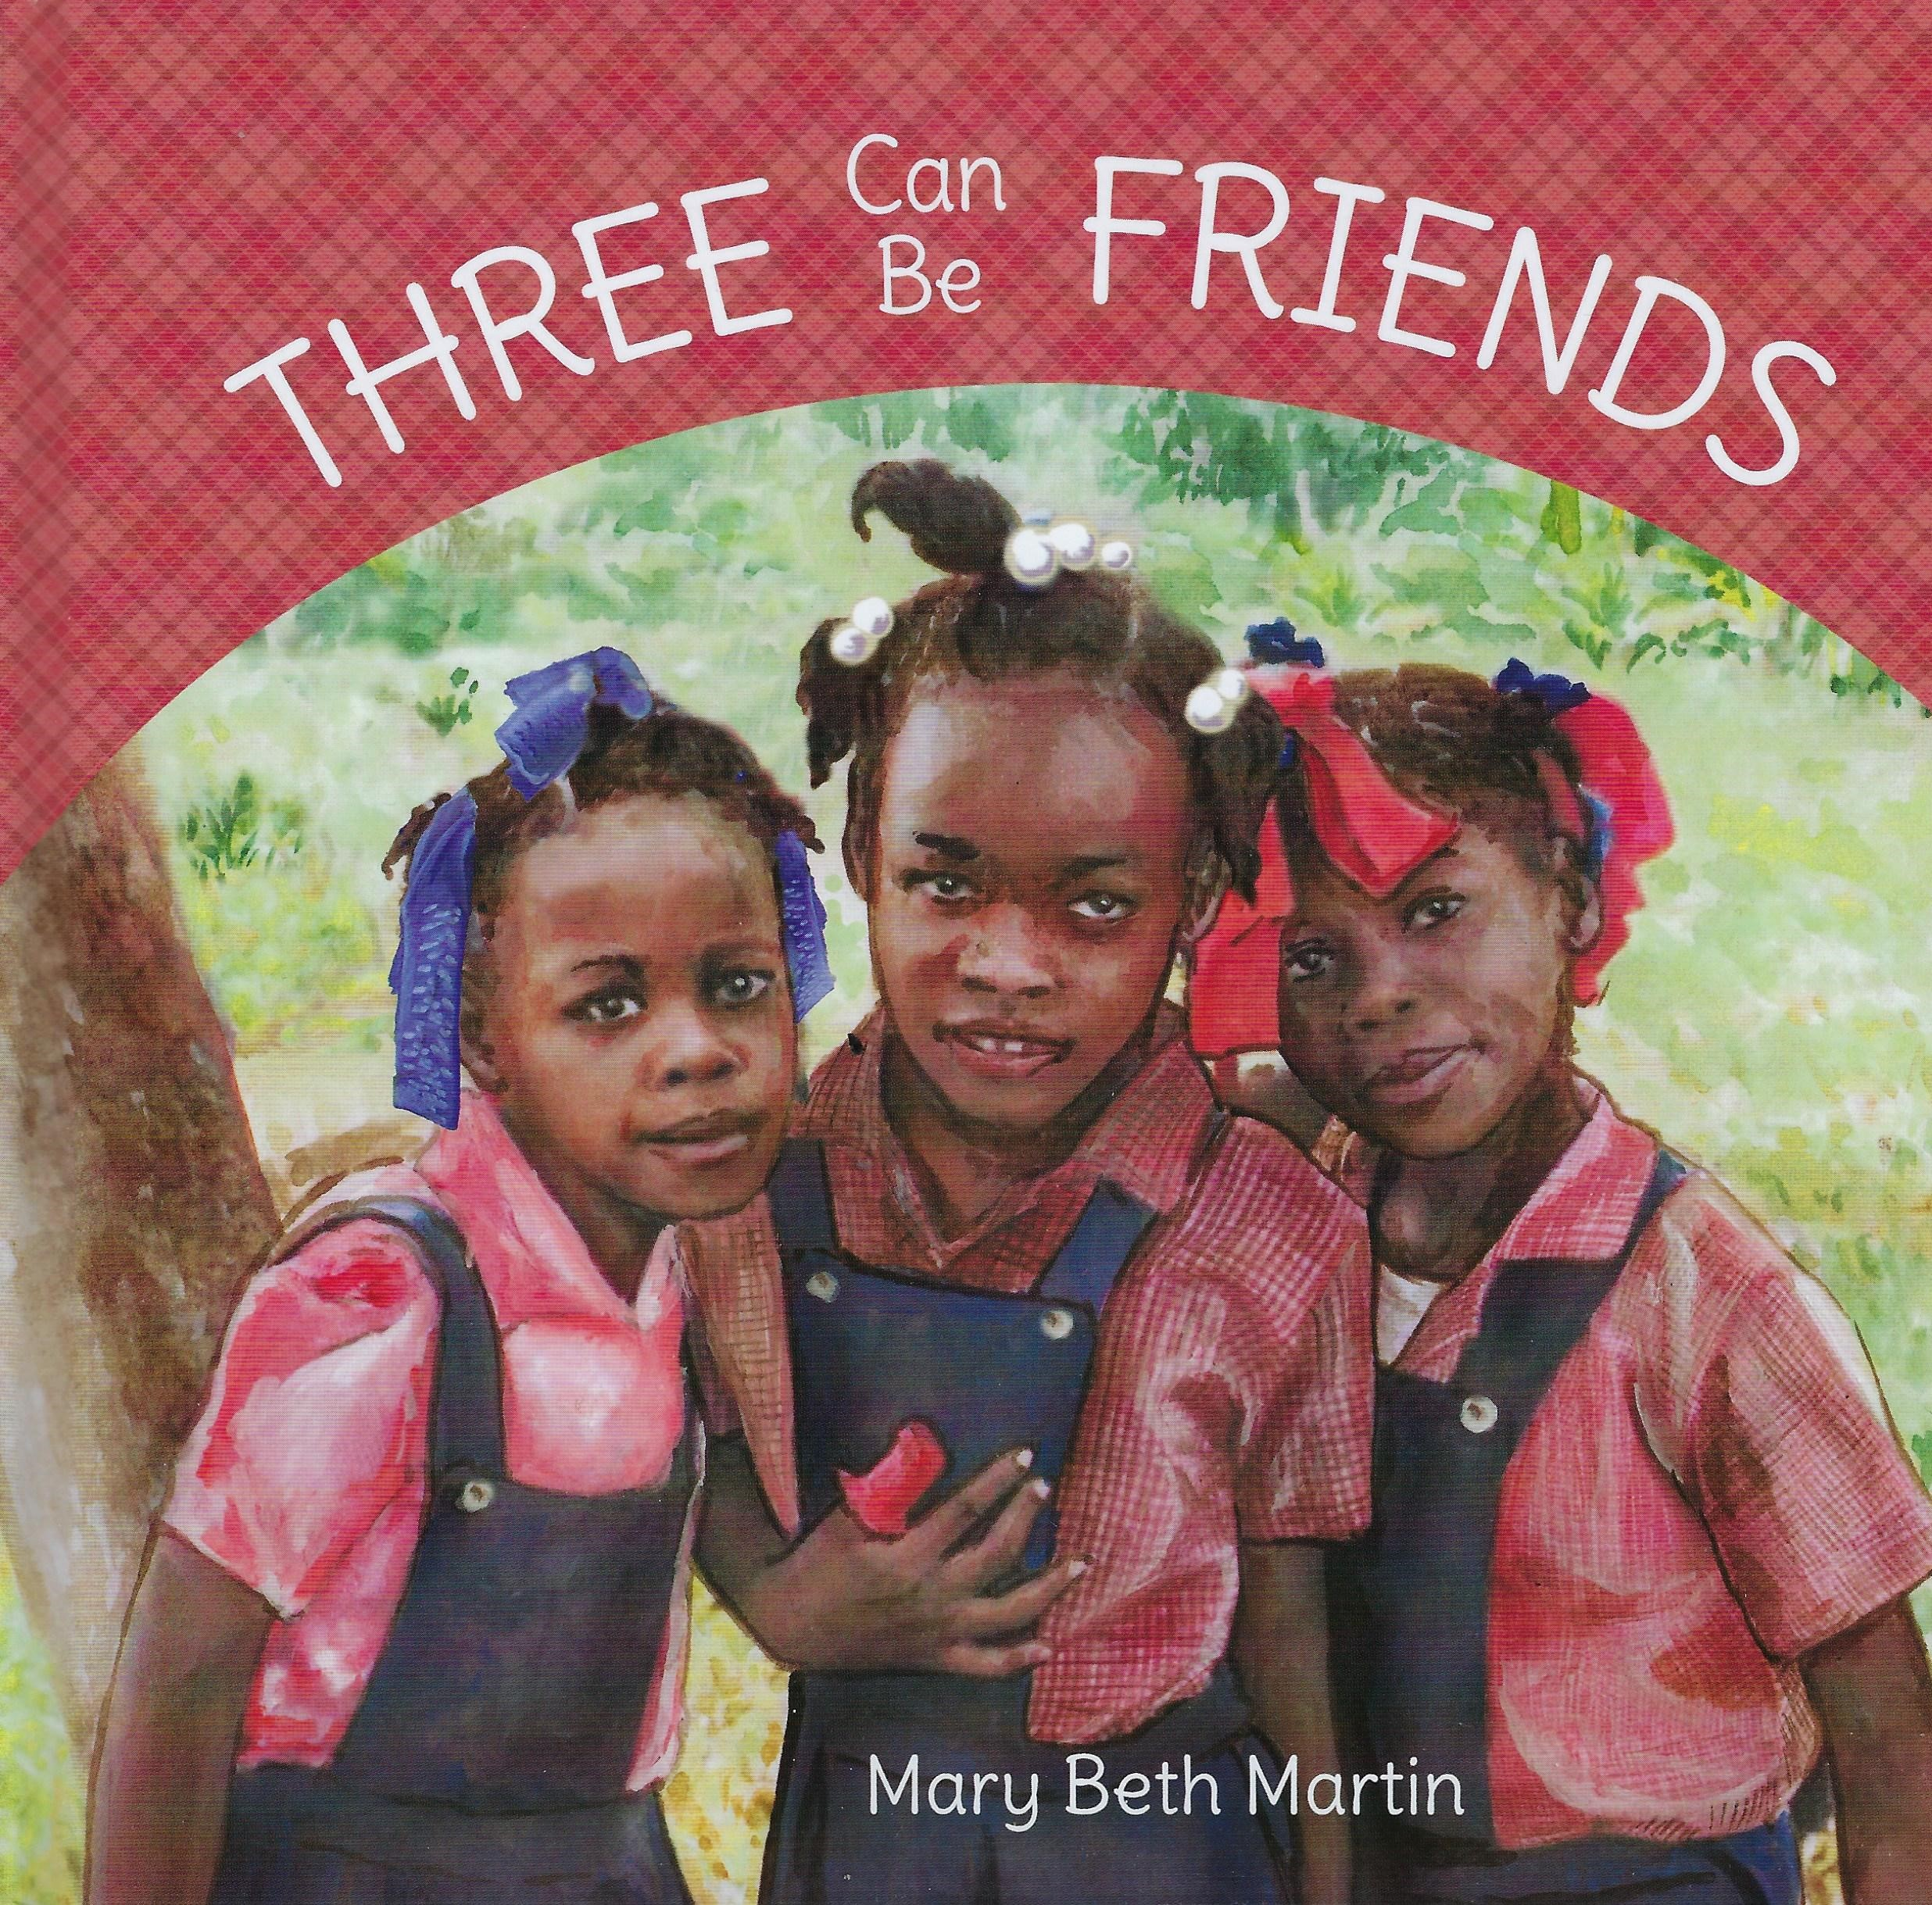 THREE CAN BE FRIENDS Mary Beth Martin